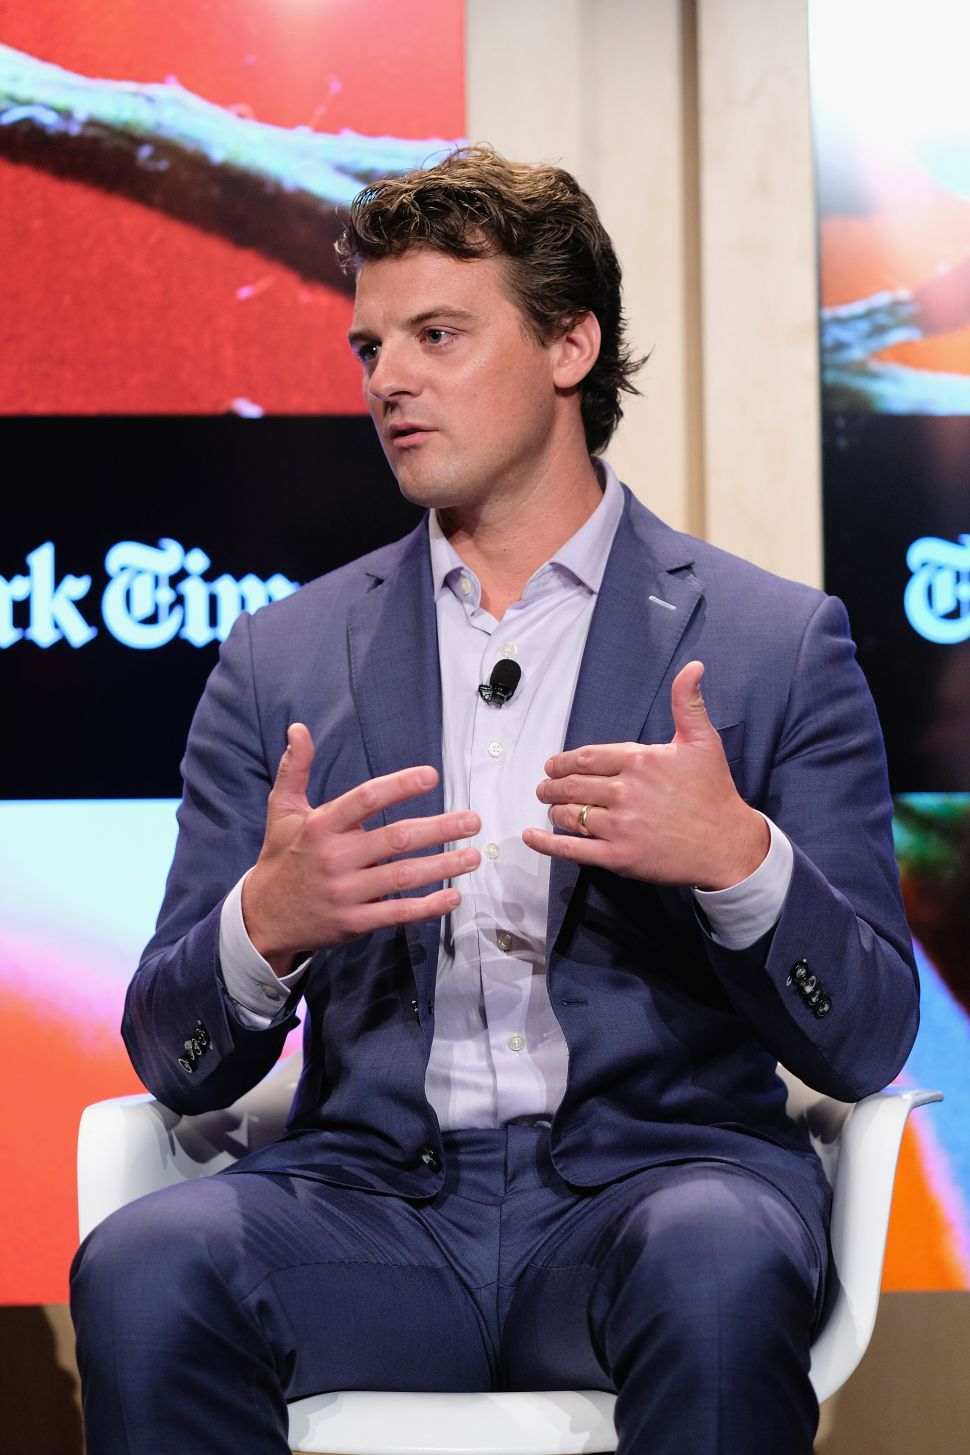 GrubHub Hubbub: Food Delivery CEO Injured His Brand